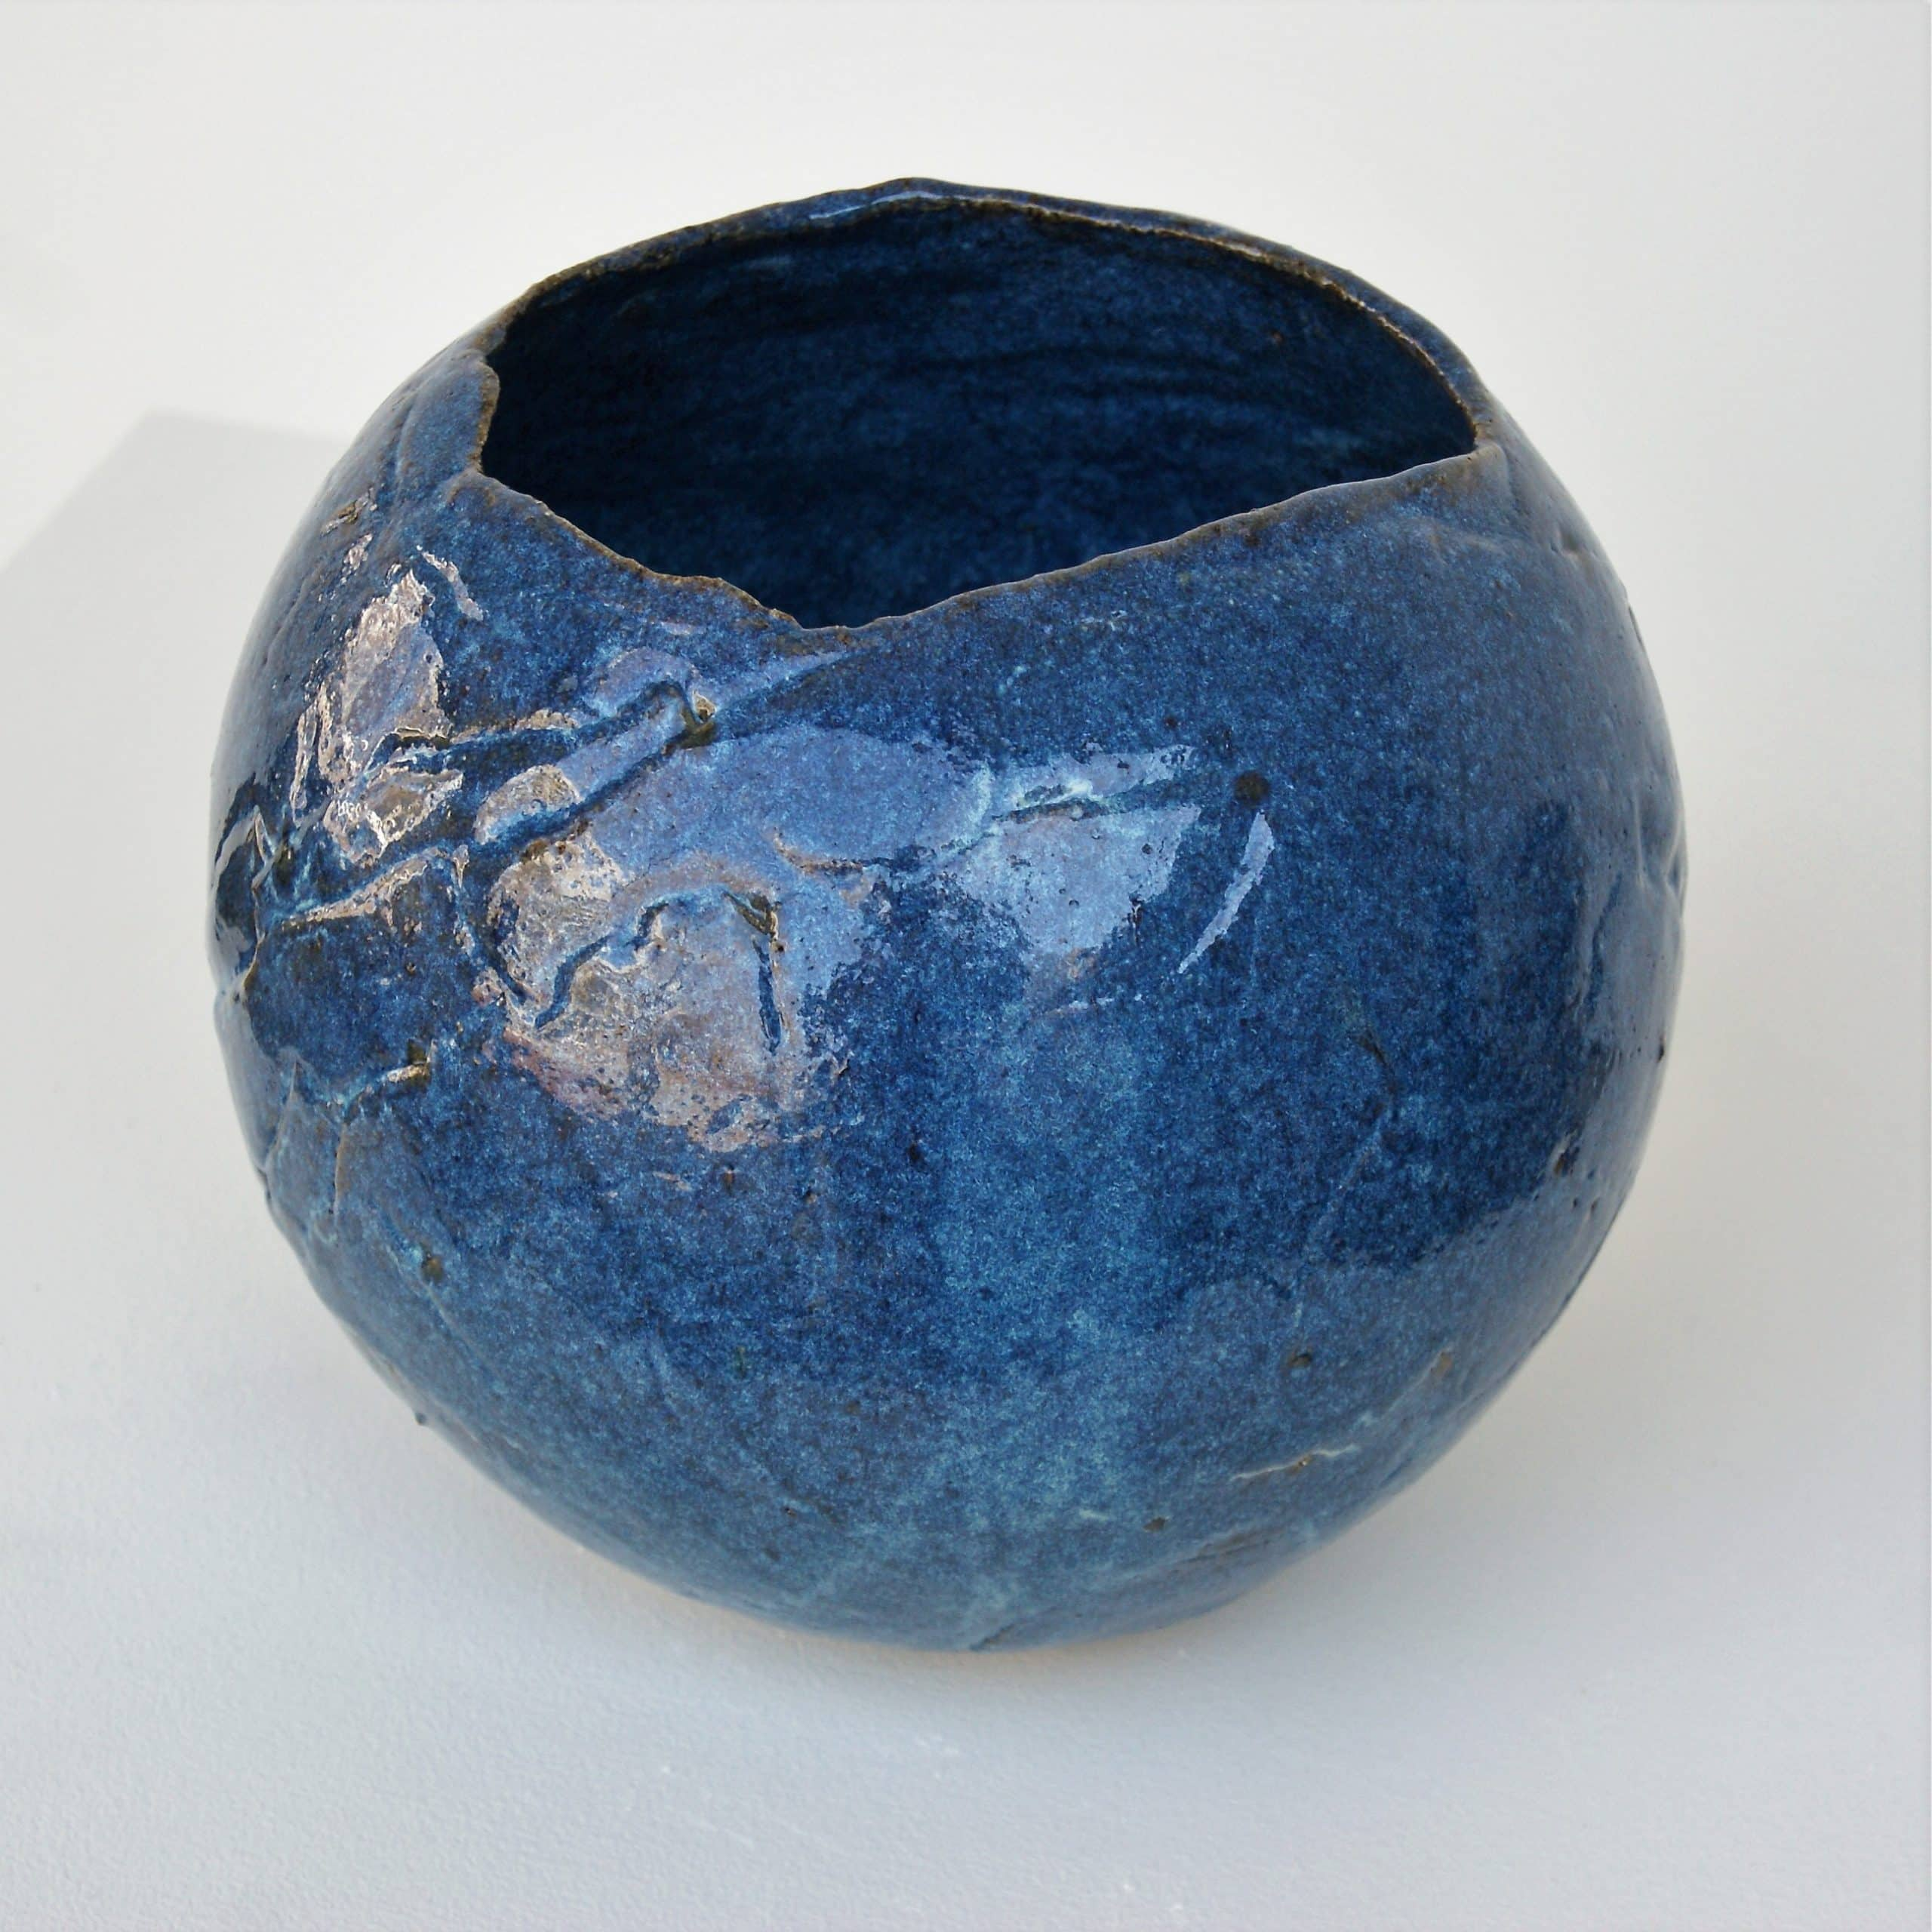 Large, slab-built spherical pot with asymetrical opening on top, glazed in blue.